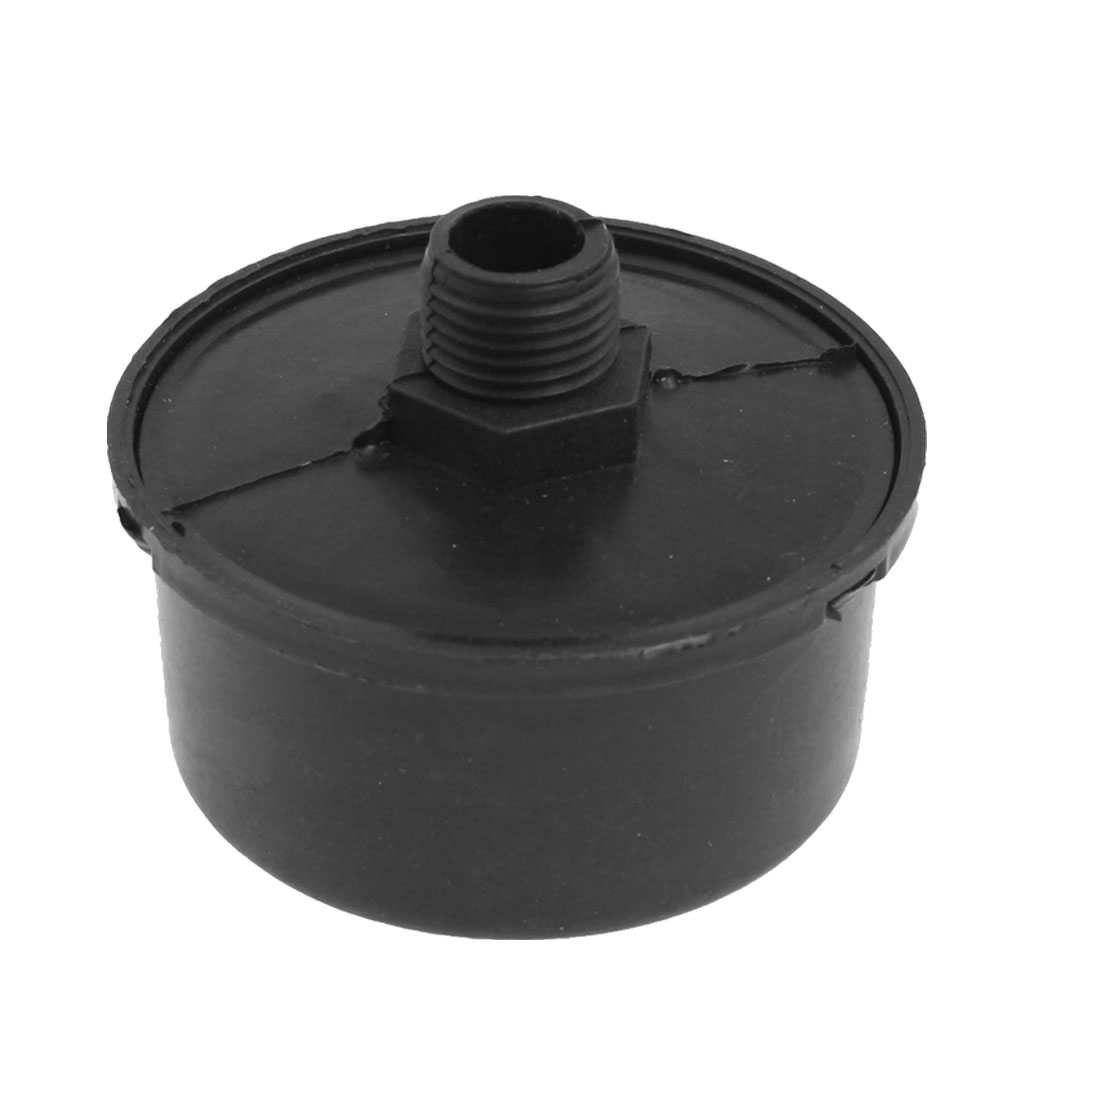 "3/8"" PT Male Thread Black Plastic Air Compressor Filter Silencer"